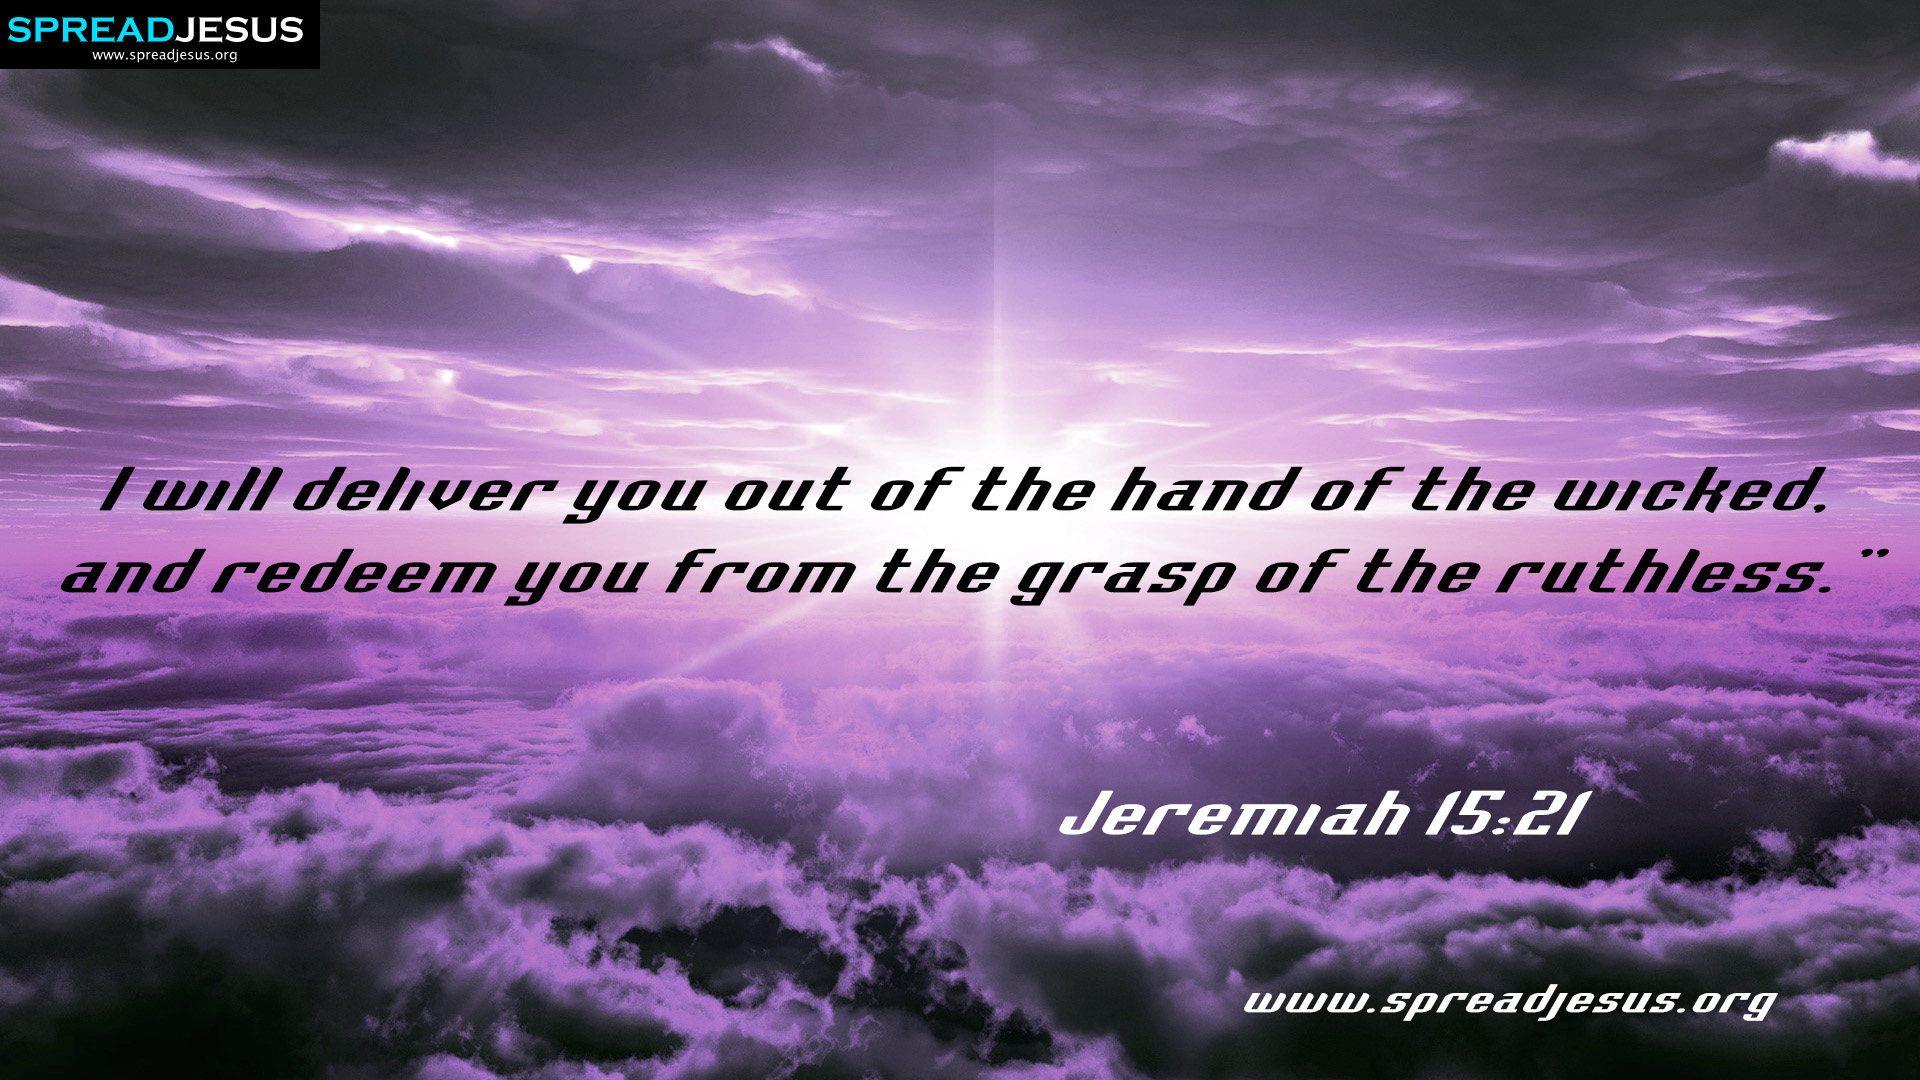 Jeremiah 15:21 BIBLE QUOTES